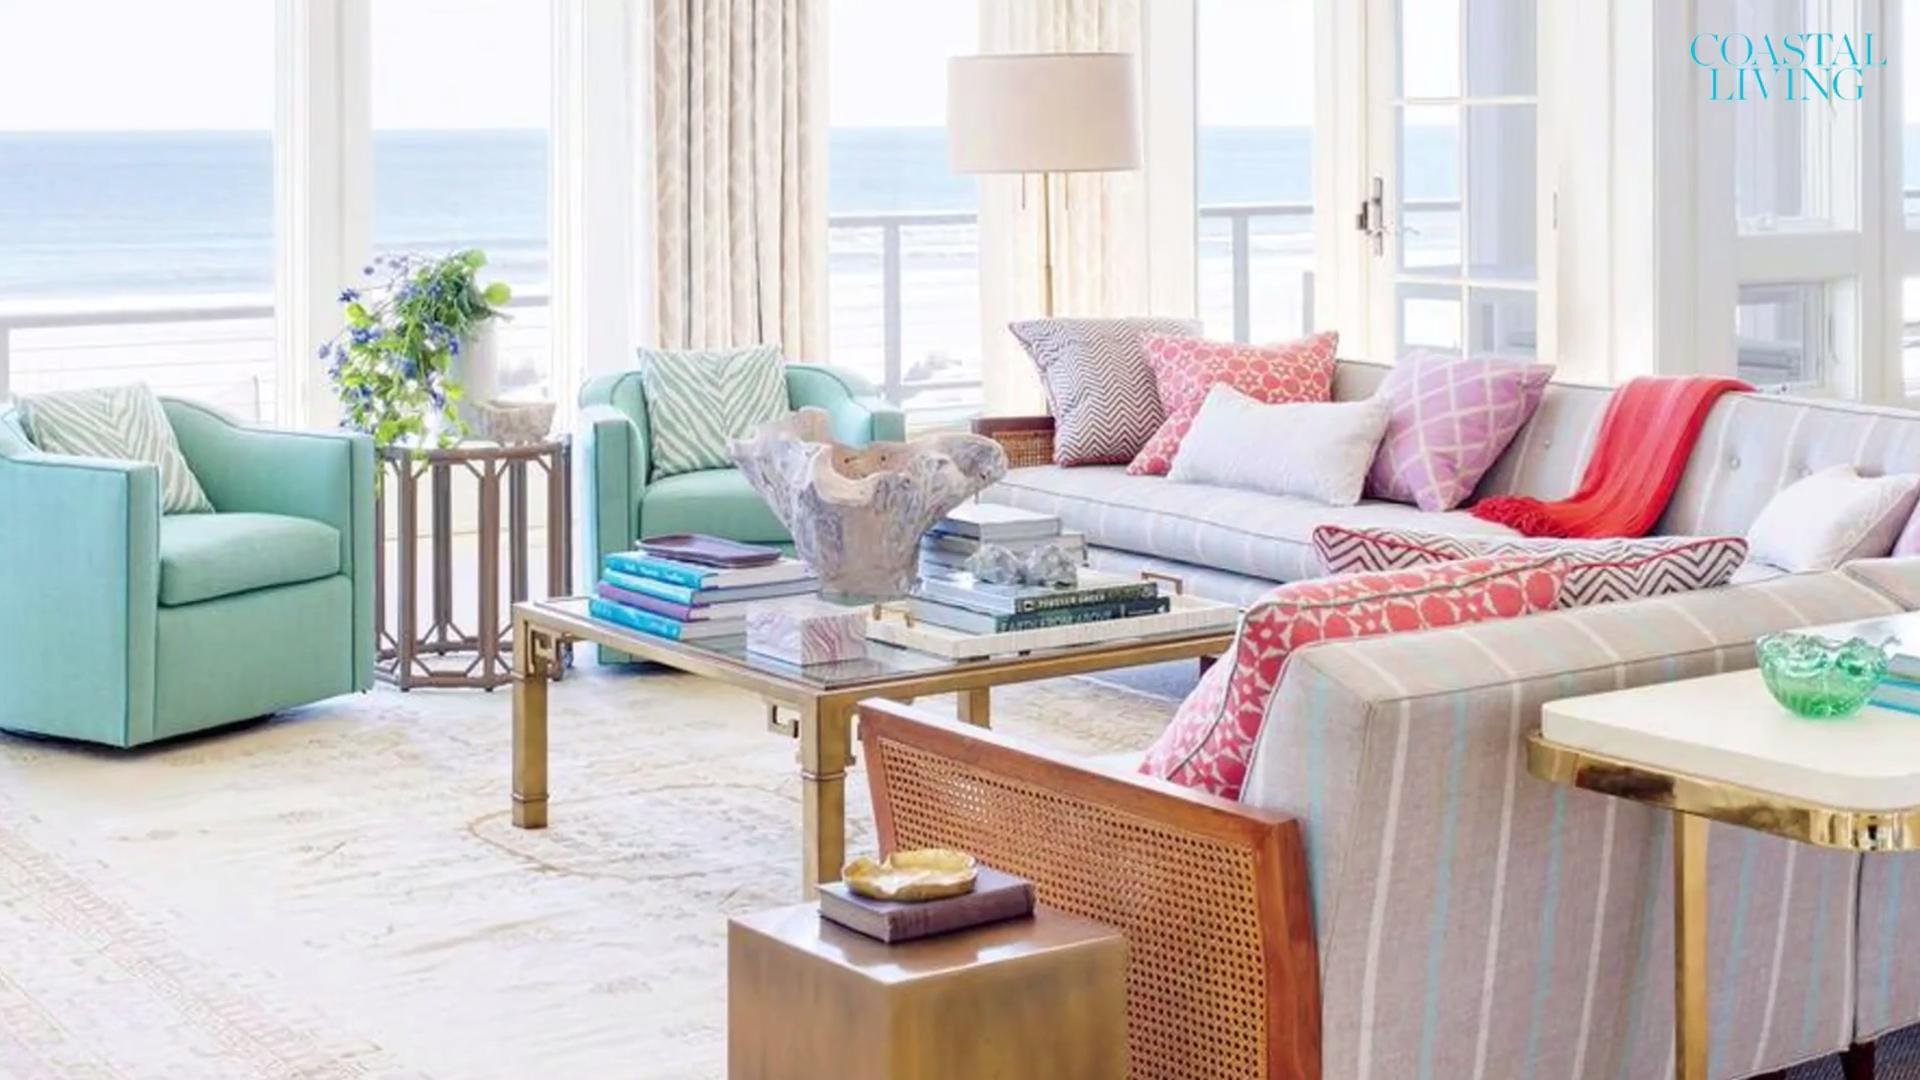 Sea Change: 8 tips for renovating the   beach house